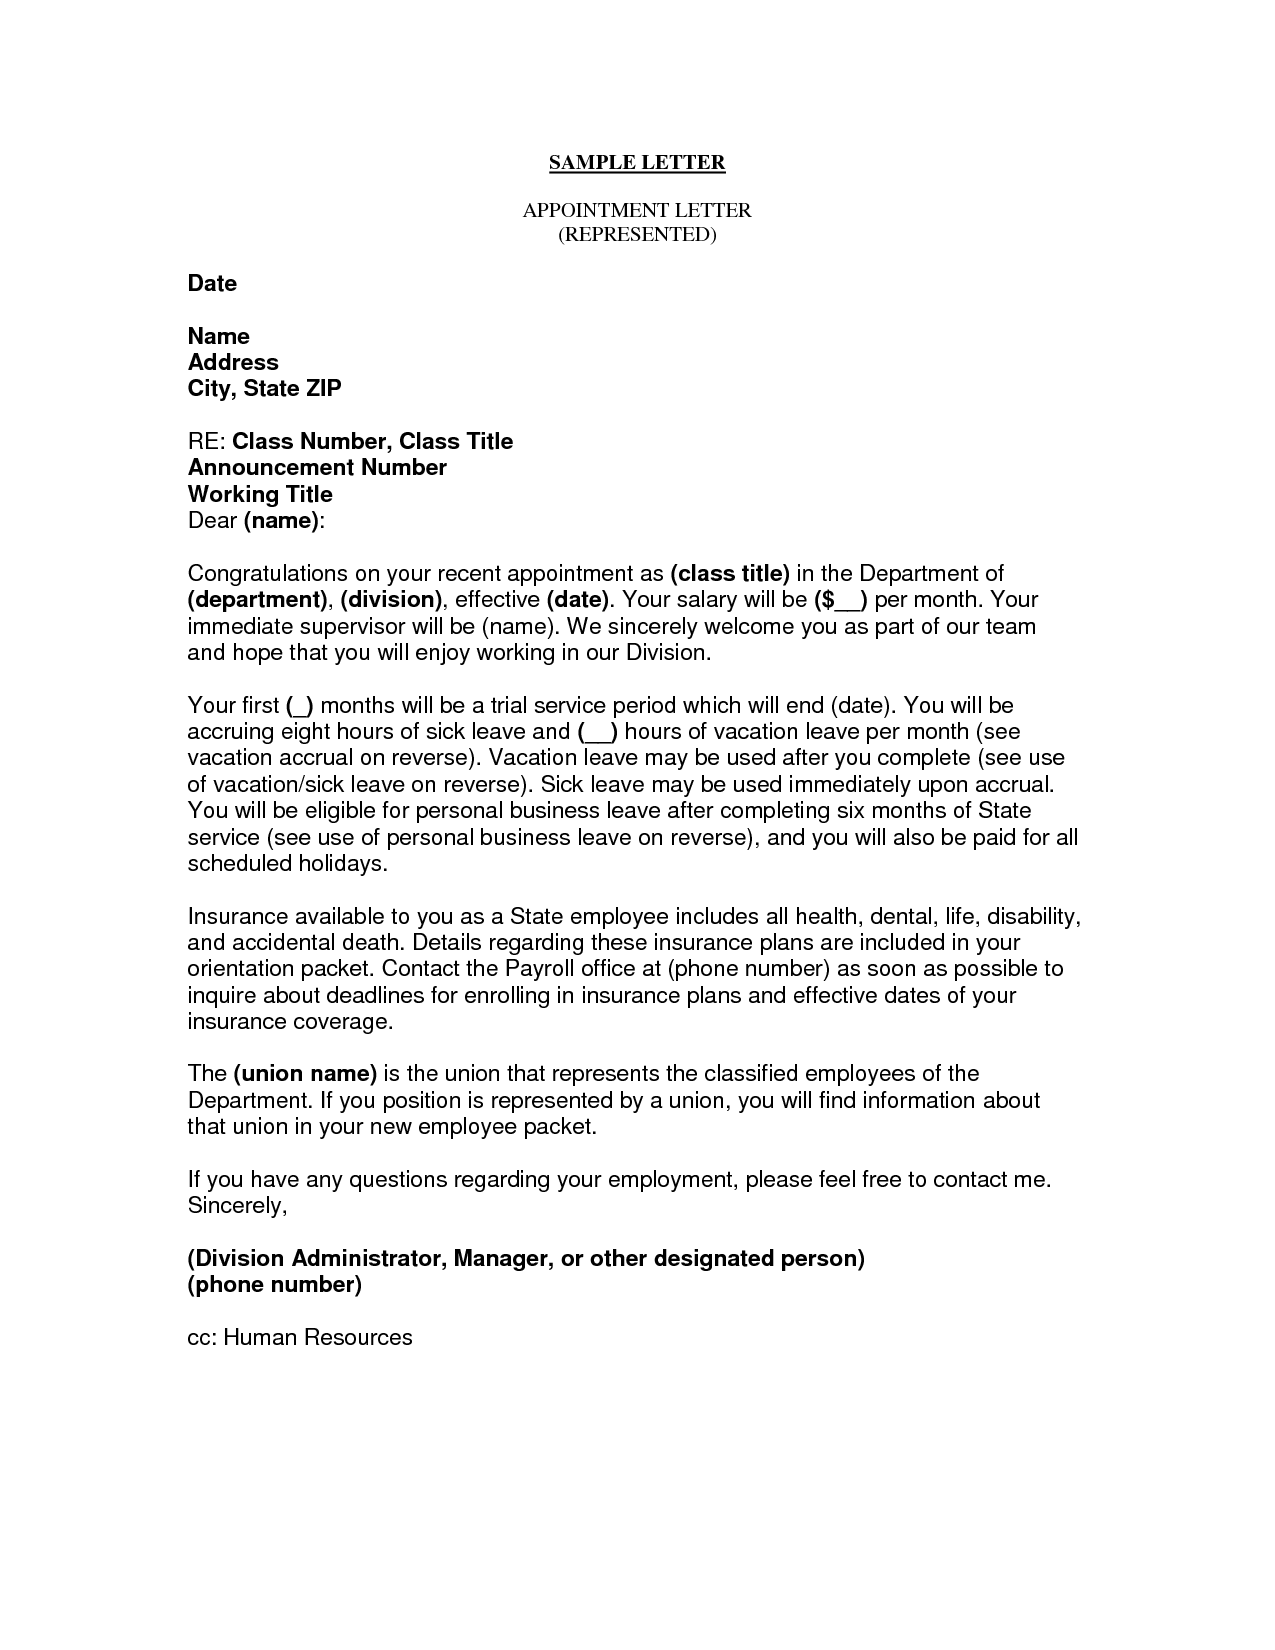 Business appointment letter this letter is used in any business business appointment letter this letter is used in any business organizations for getting the appointment cheaphphosting Images